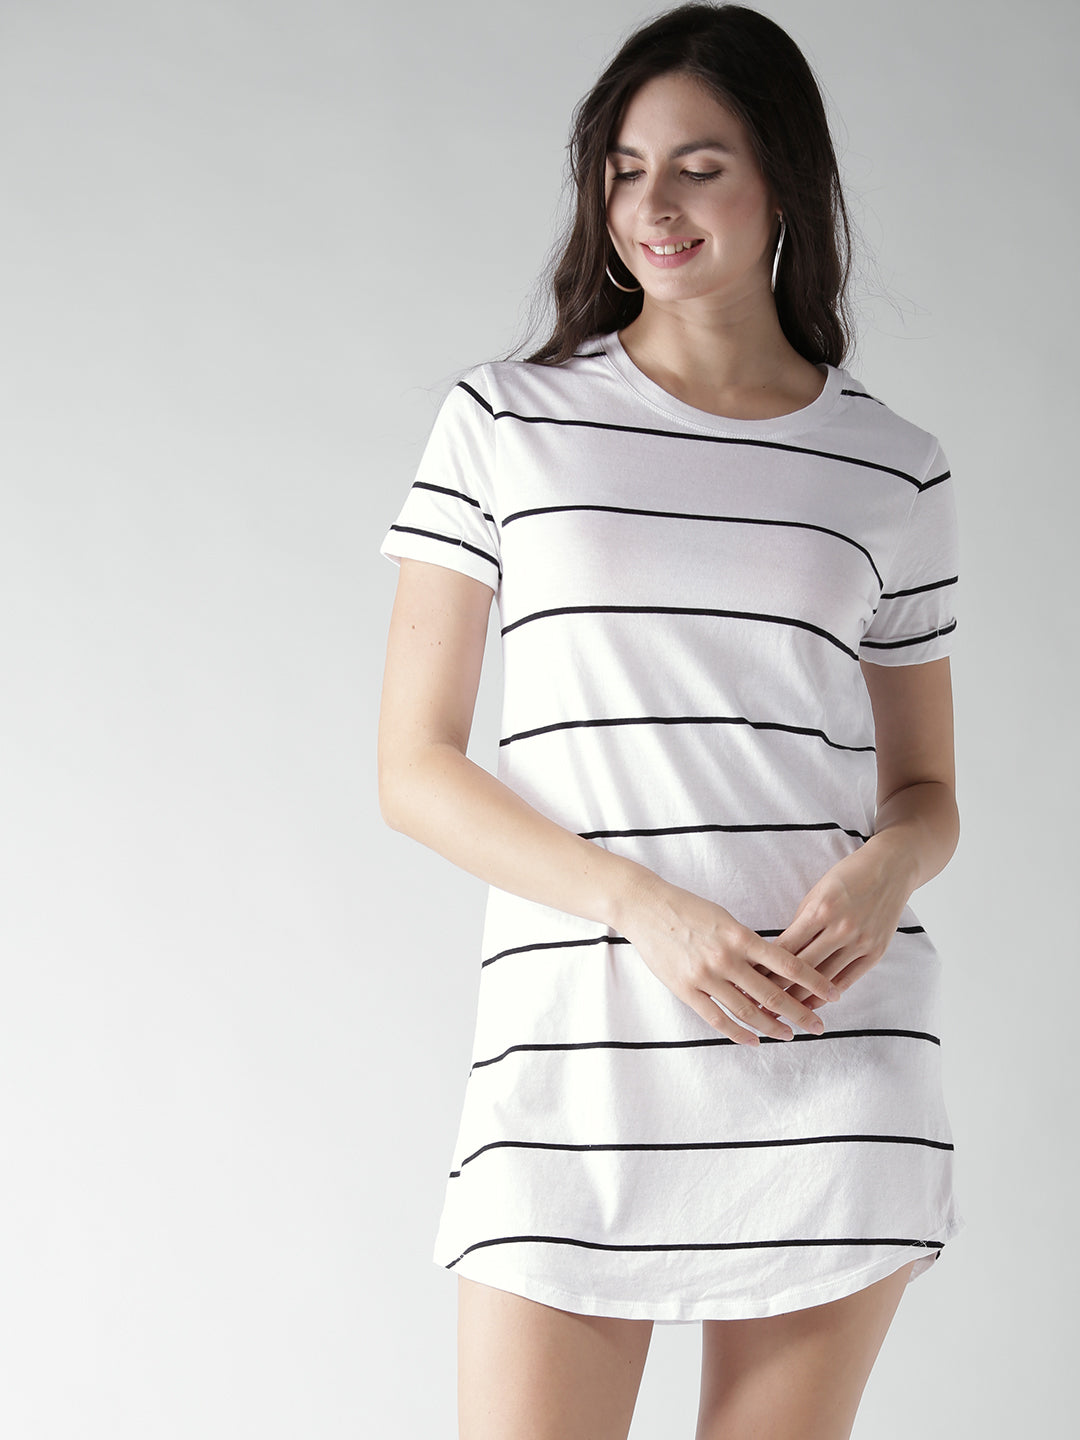 Women White & Black Striped T-shirt Dress